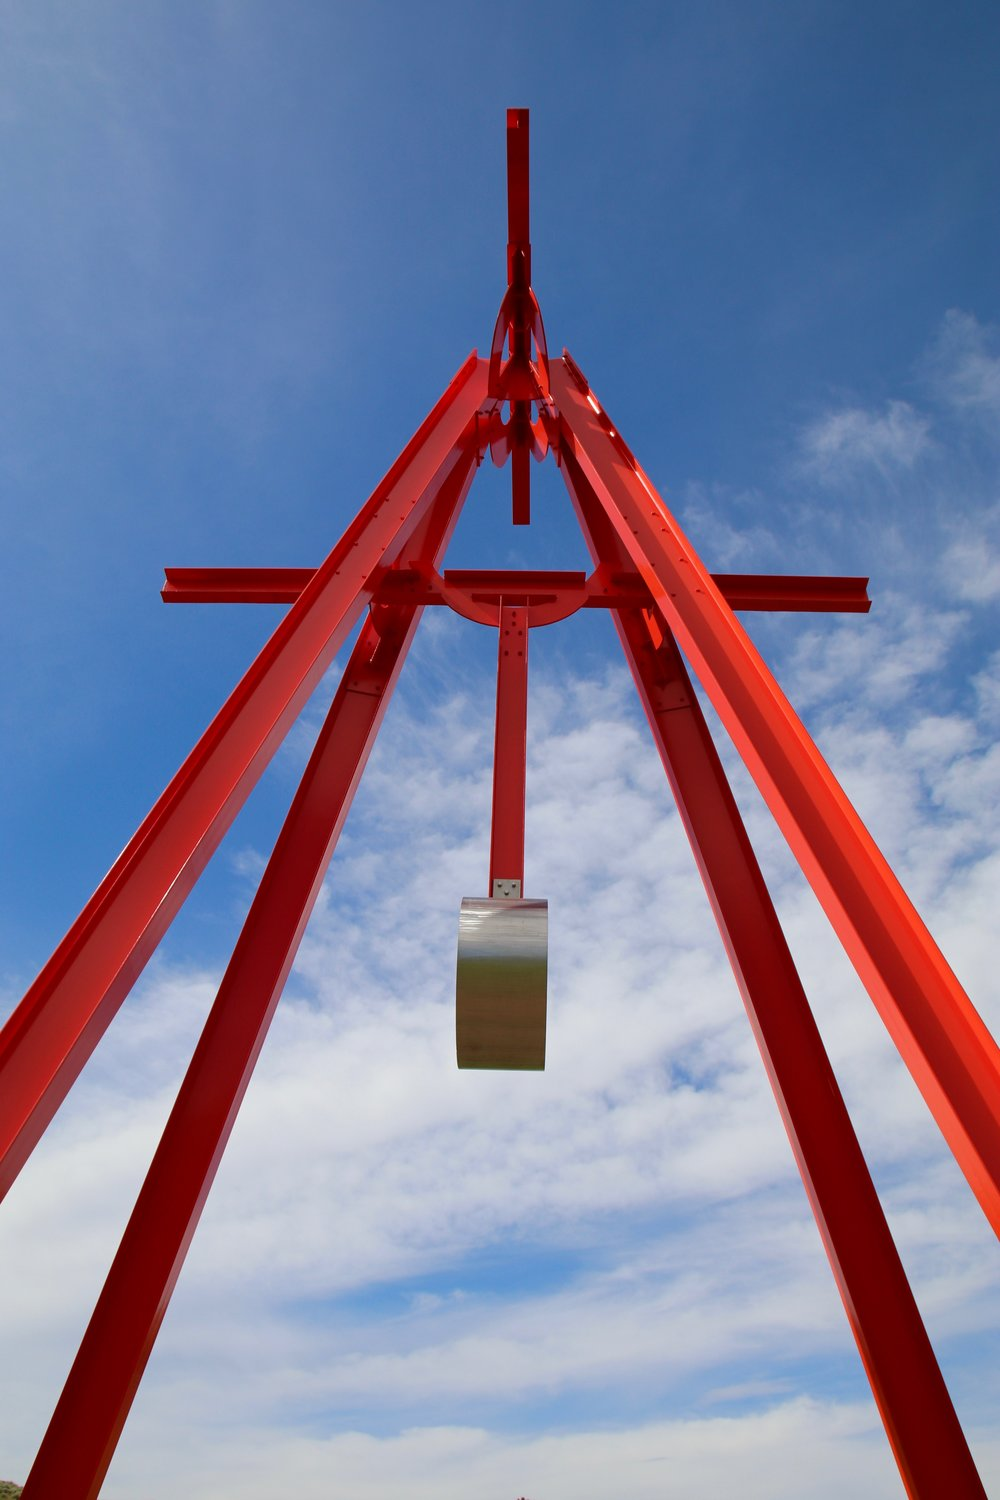 proverb by mark di suvero